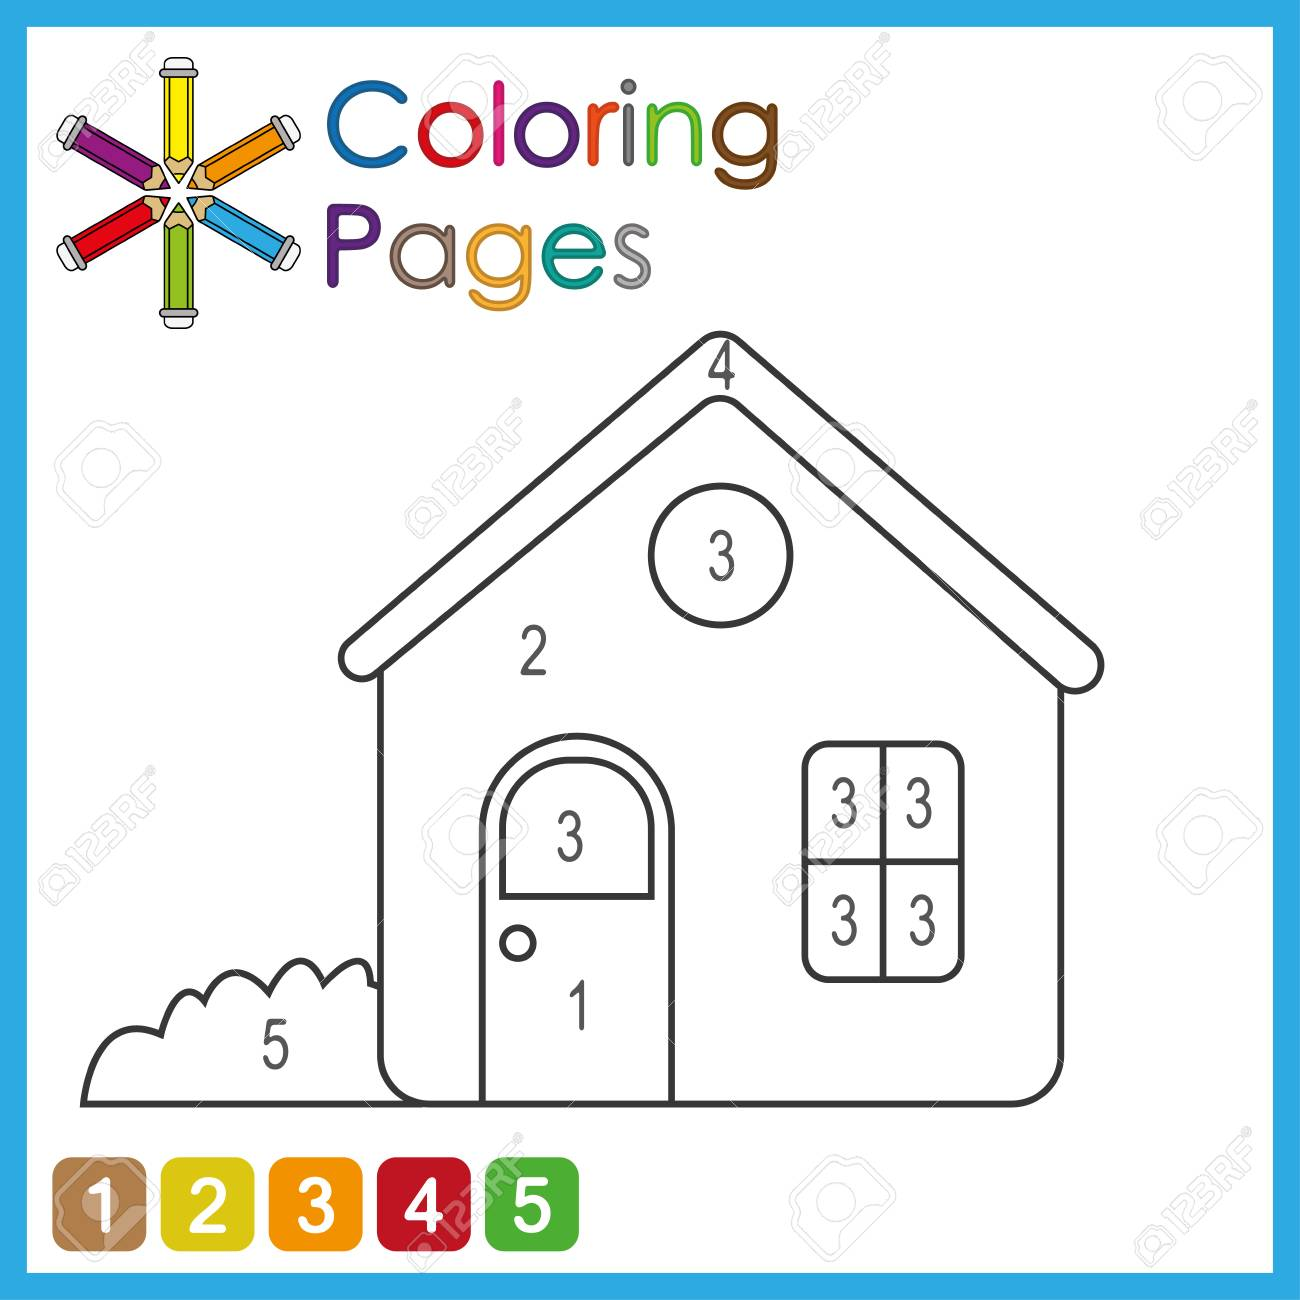 coloring page for kids, color the parts of the object according to numbers, color by numbers, activity pages - 122858947